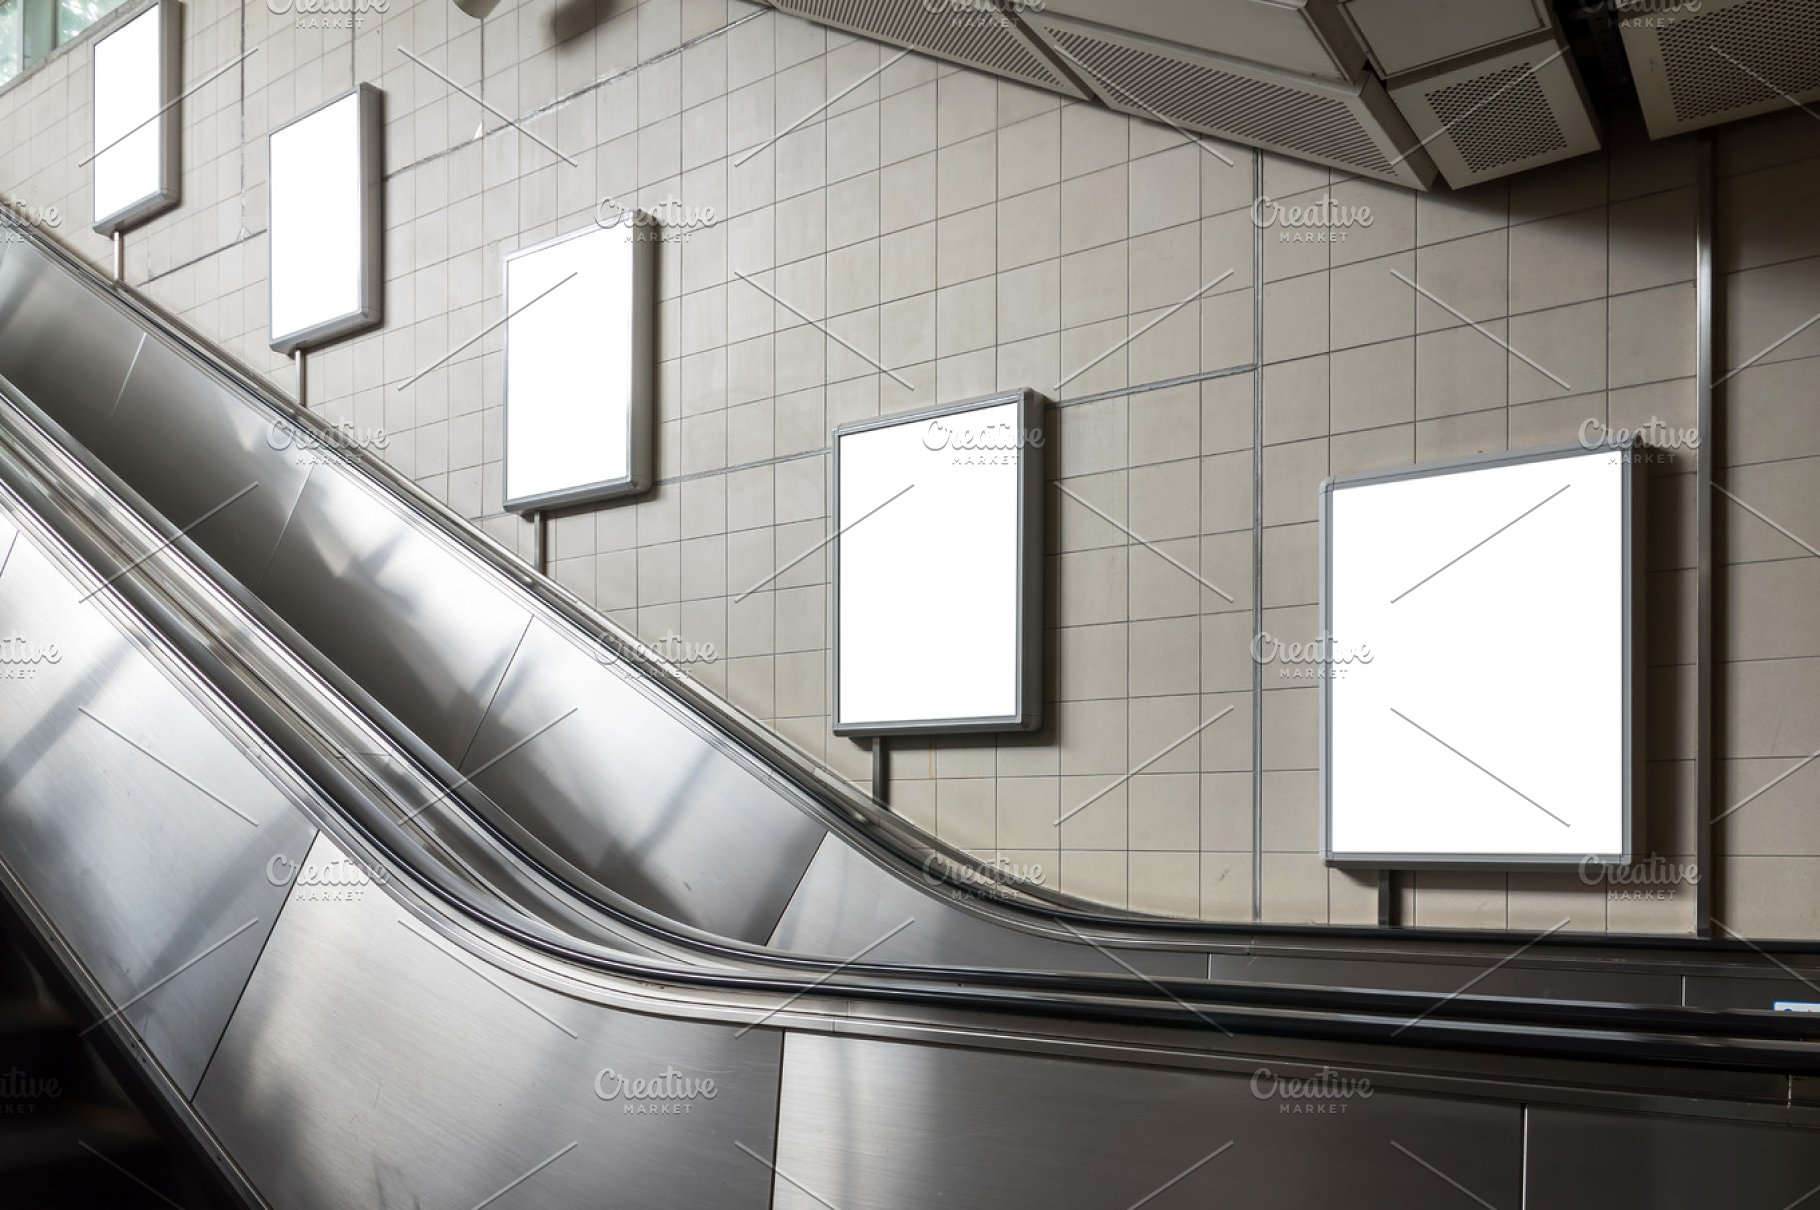 Subway Advertising Mockup Concept High Quality Business Images